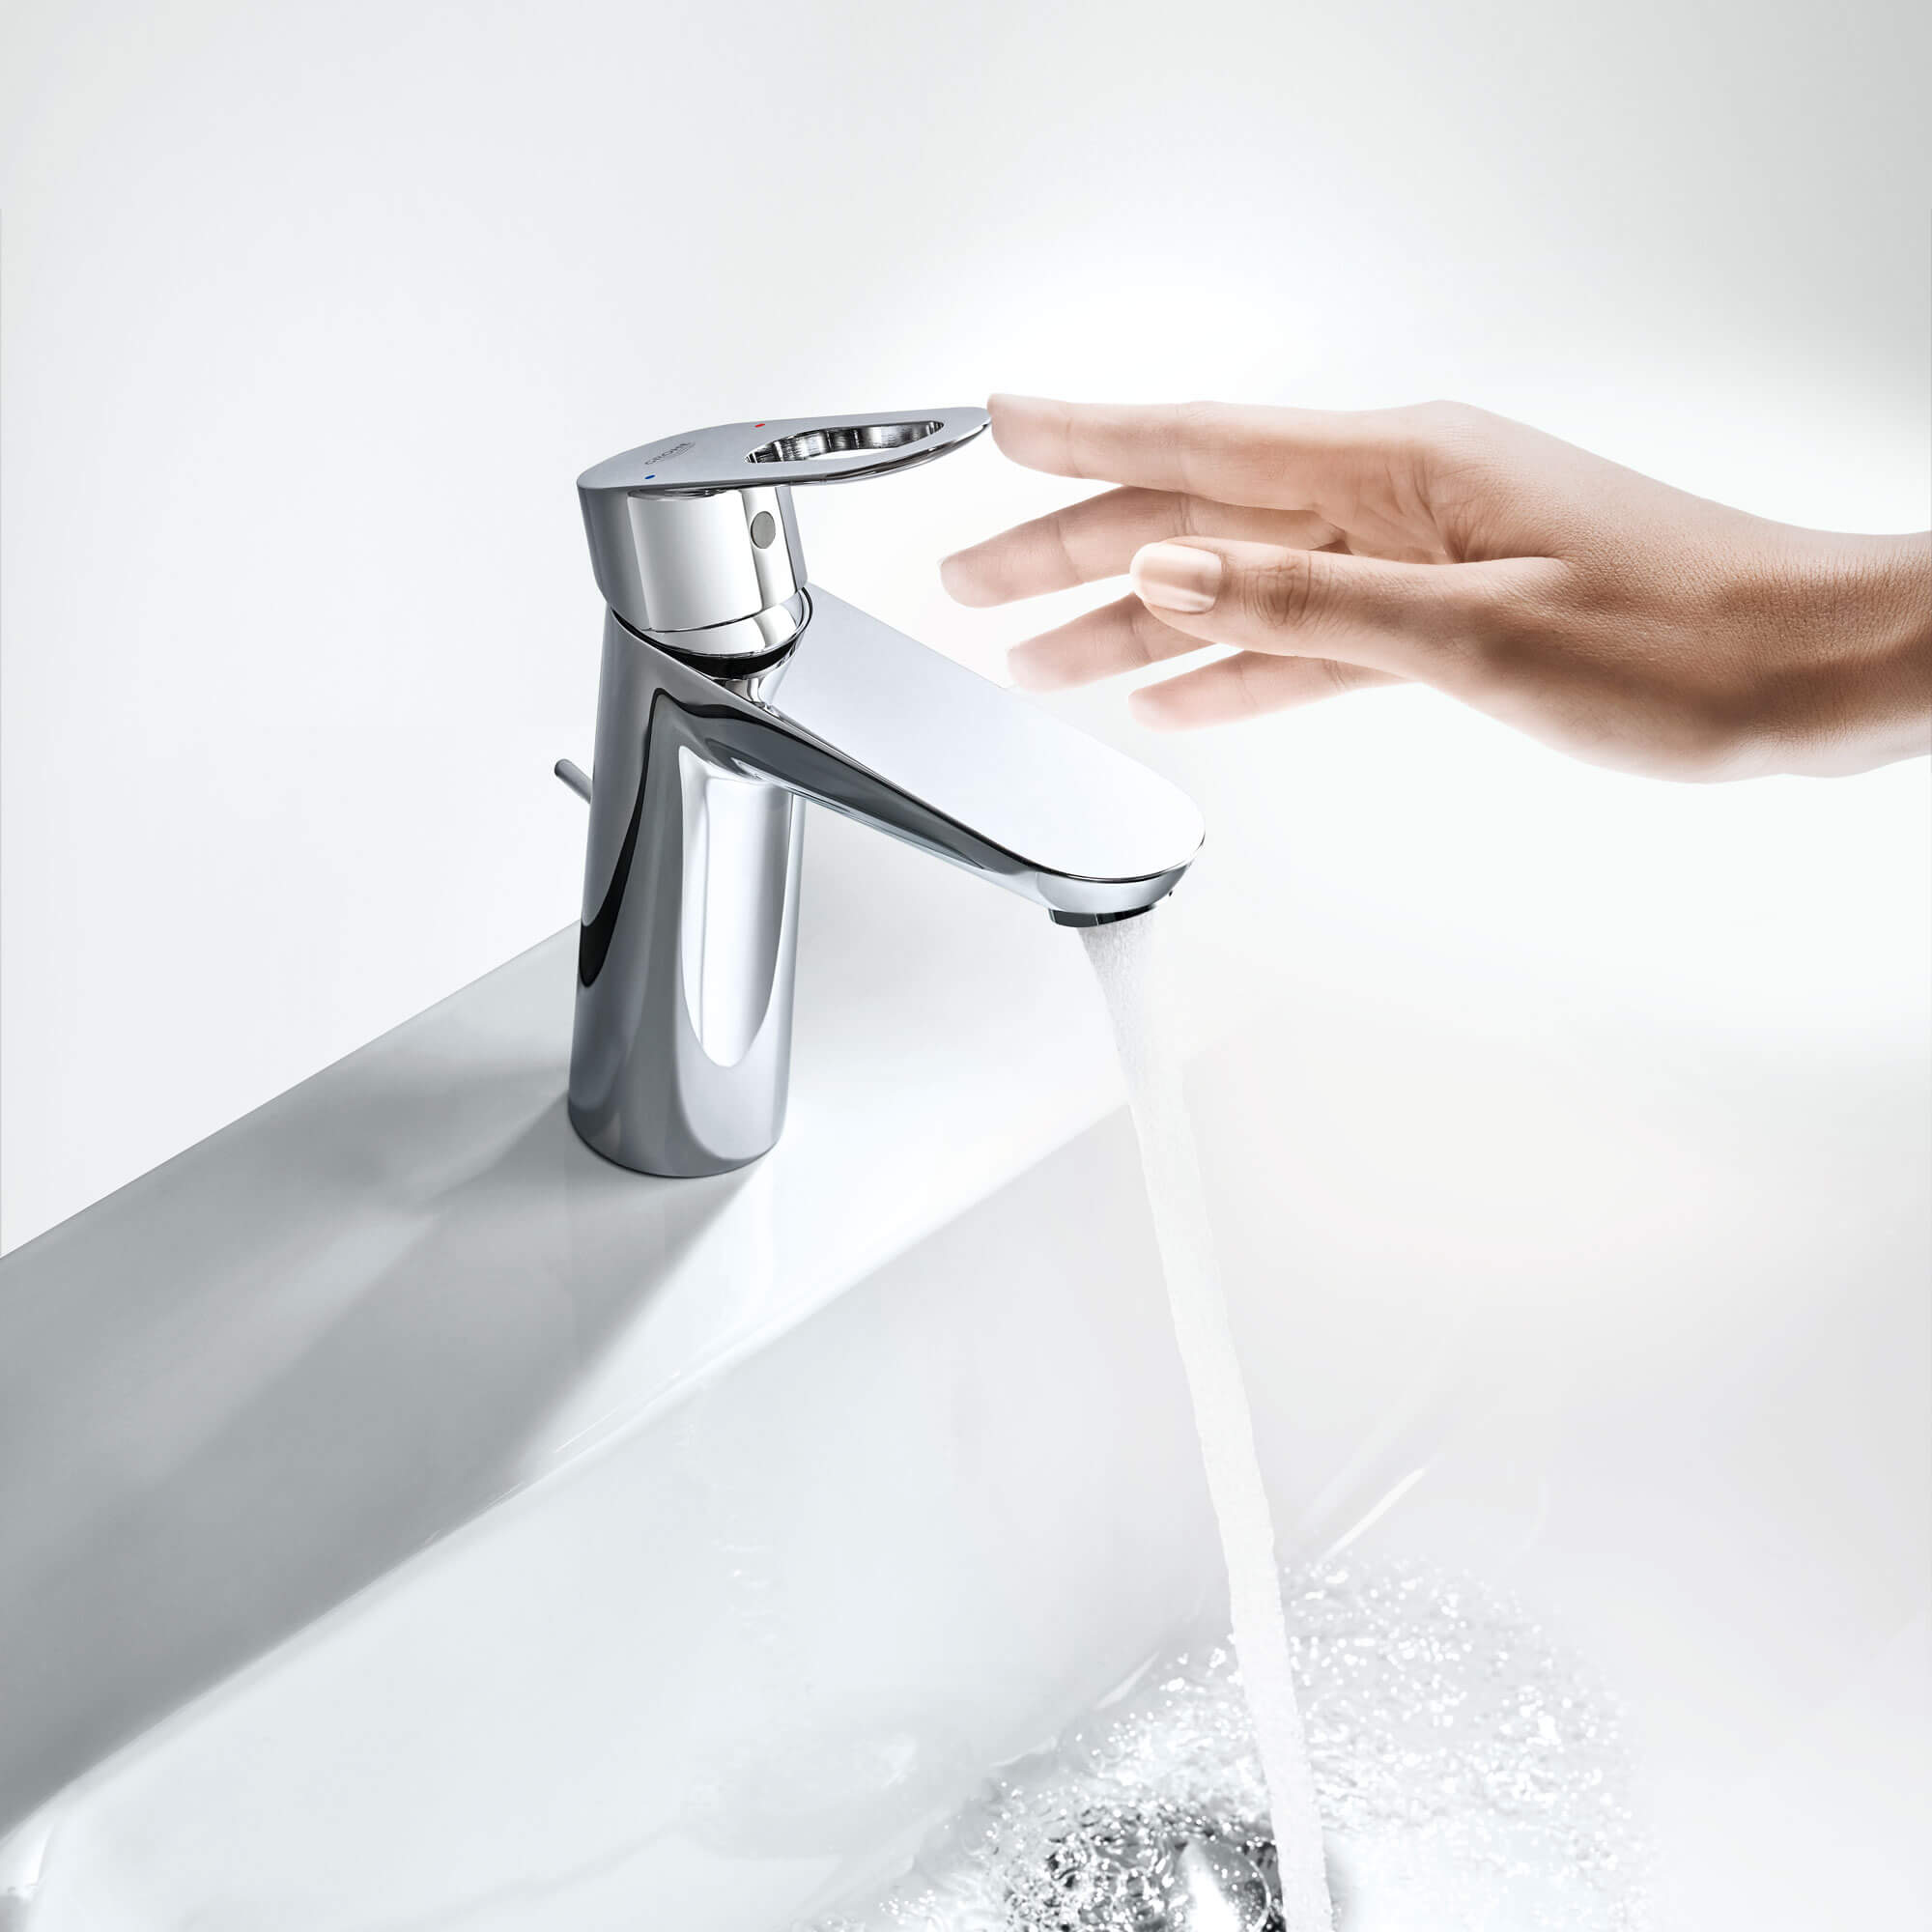 Bauloop Bathroom Sink Faucet by Grohe with Running Water